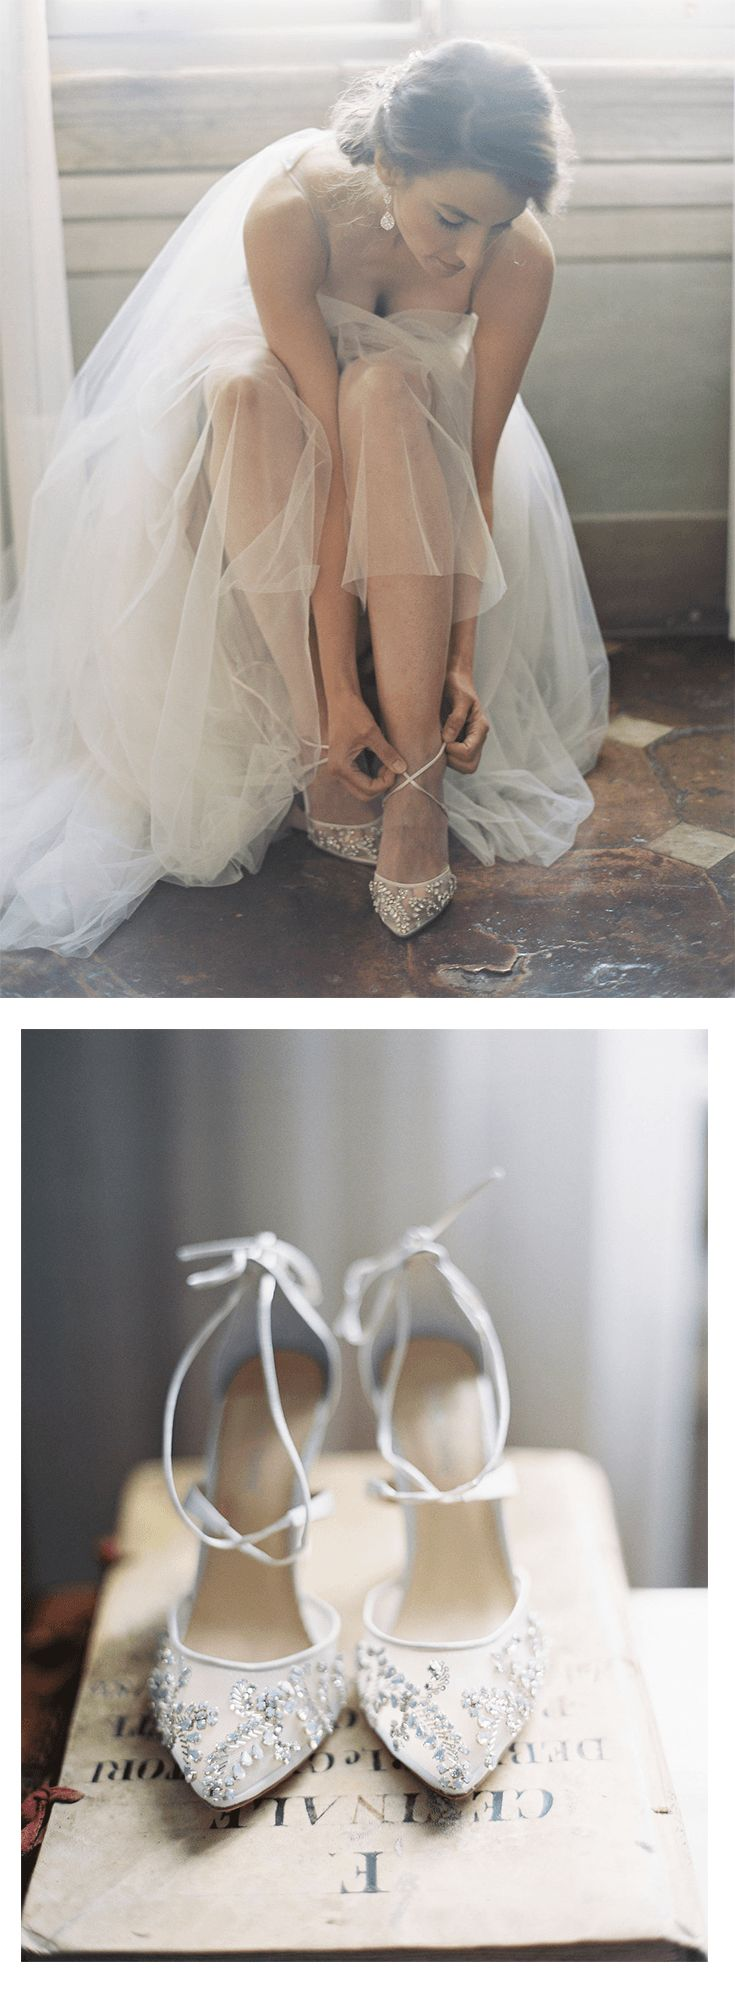 We love the way our Bella Belle crystal embroidered sparkly wedding shoes look on our #RealBride Elan. The gorgeous elegant and comfortable wedding heels is perfect for brides who are glamorous, vintage and want to look like Cinderella for their destination Italy wedding, matched perfectly with a tulle ballgown wedding dress with crystal beads and a heartshape neckline. Photography by Kurt Boomer